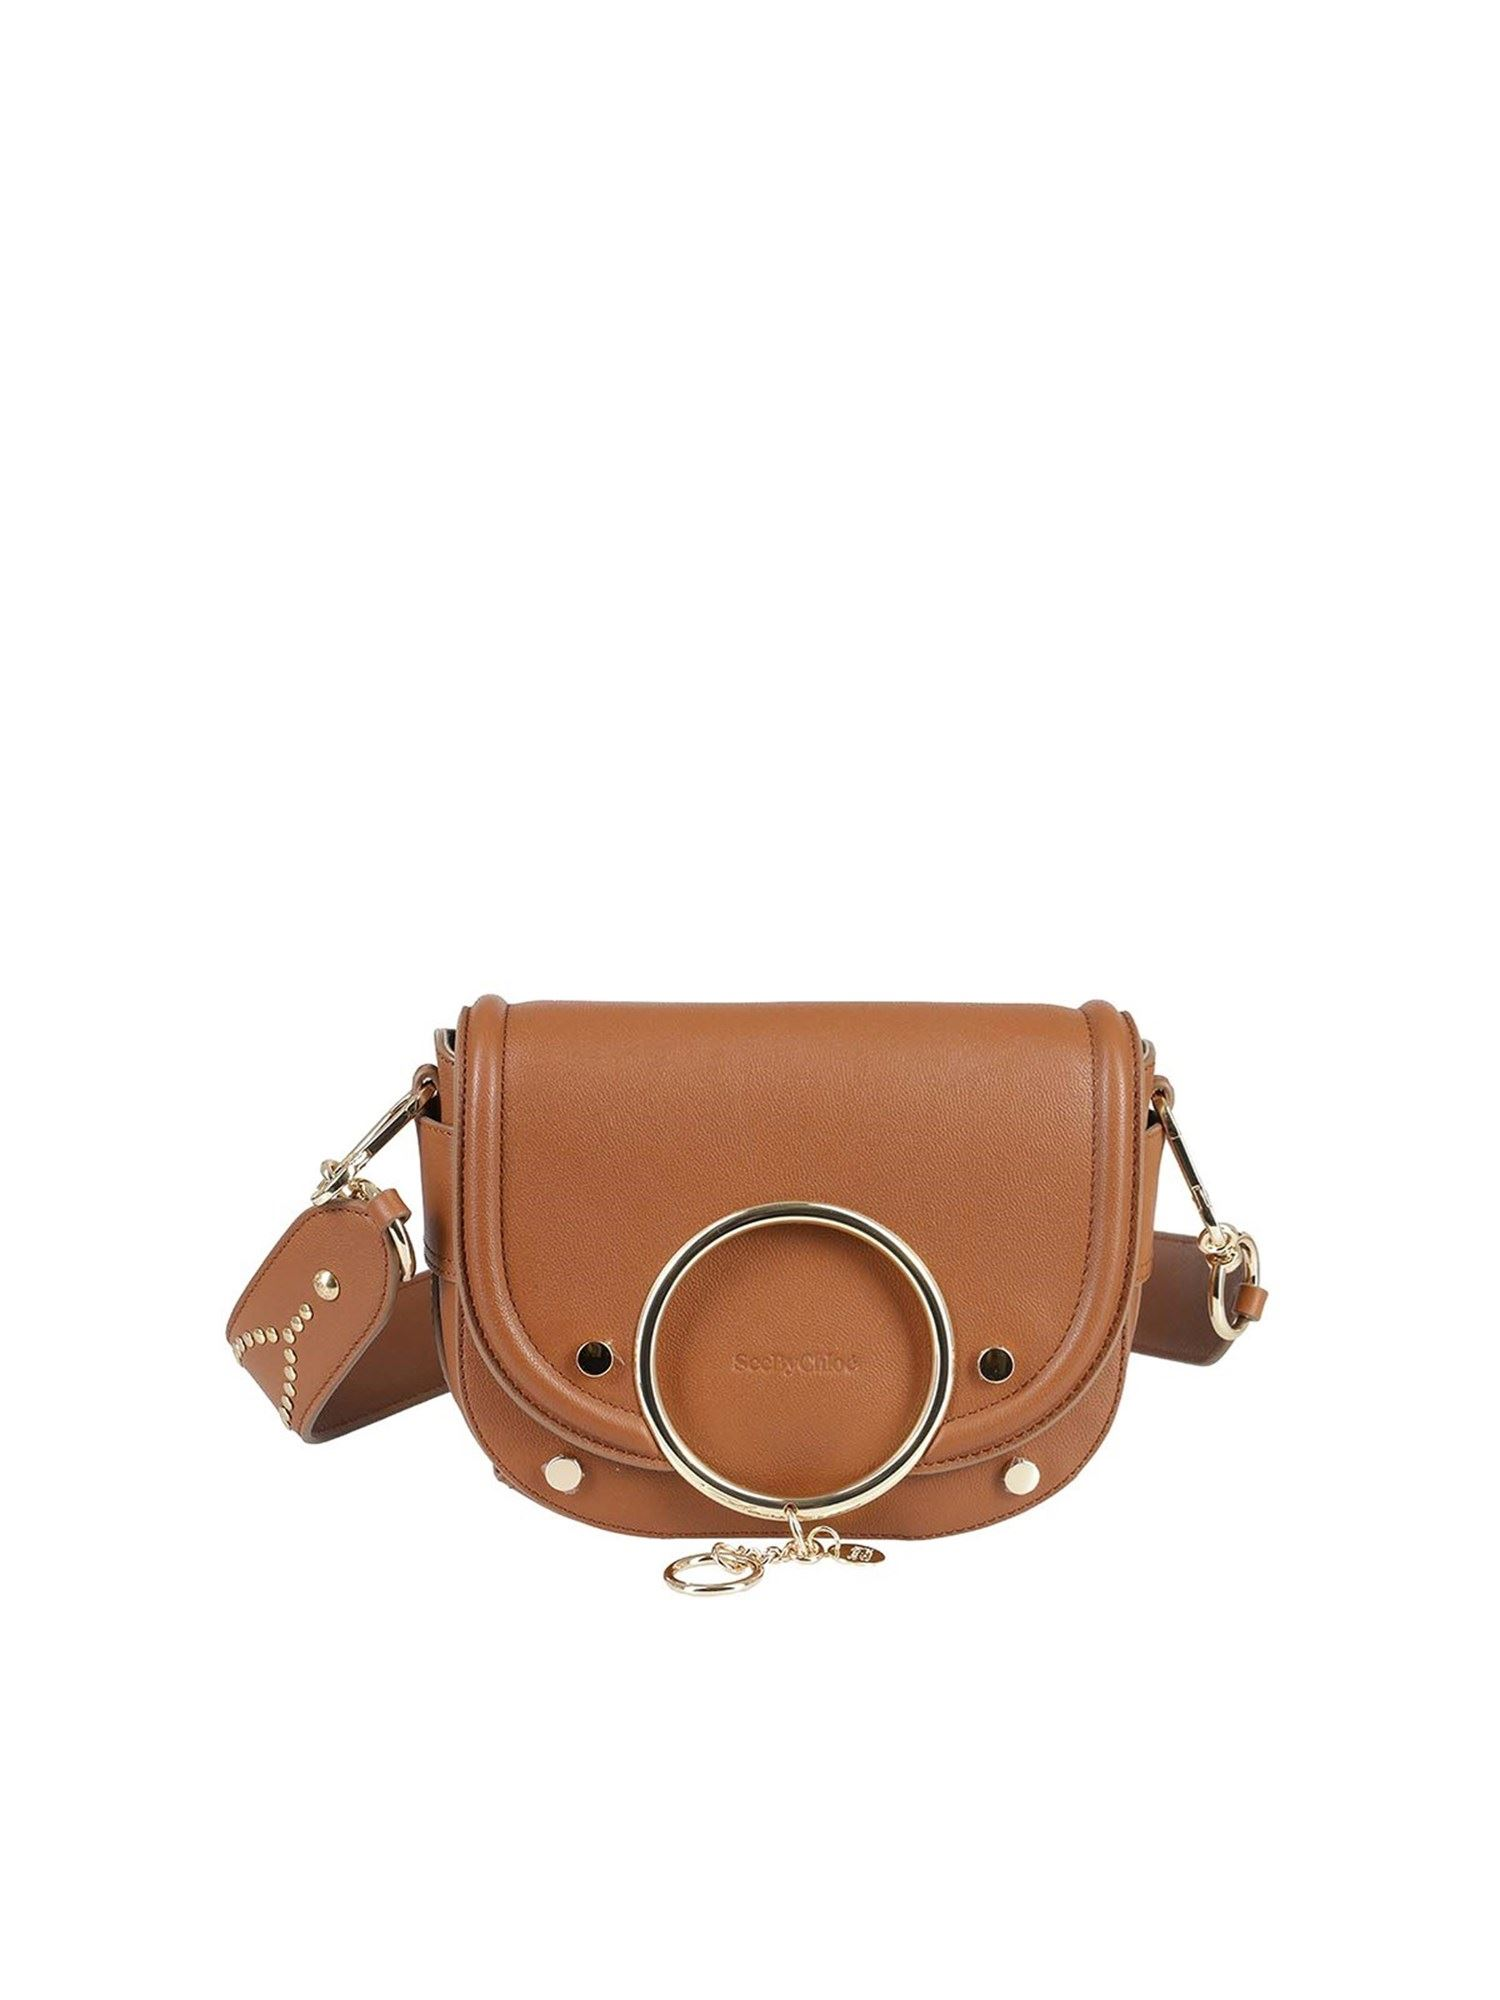 See By Chloé Leathers MARA CROSSBODY BAG IN CAMEL